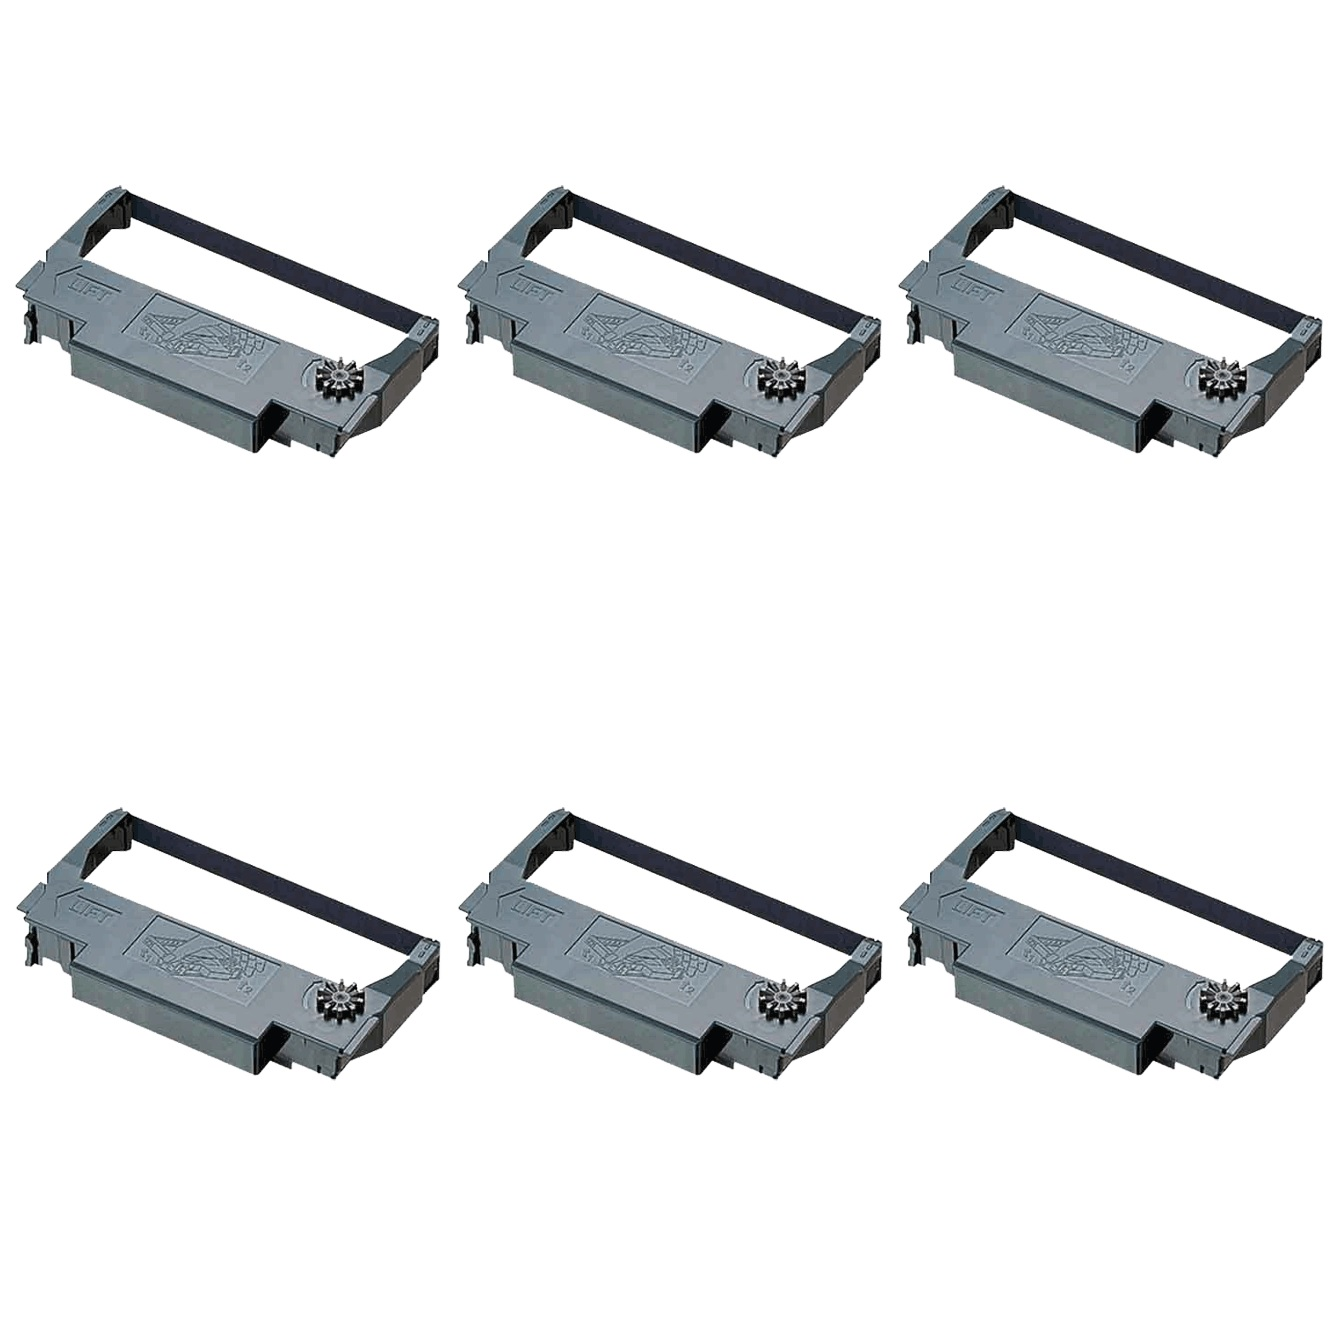 View Epson ERC38 Ink Ribbon Black - 6 Pack